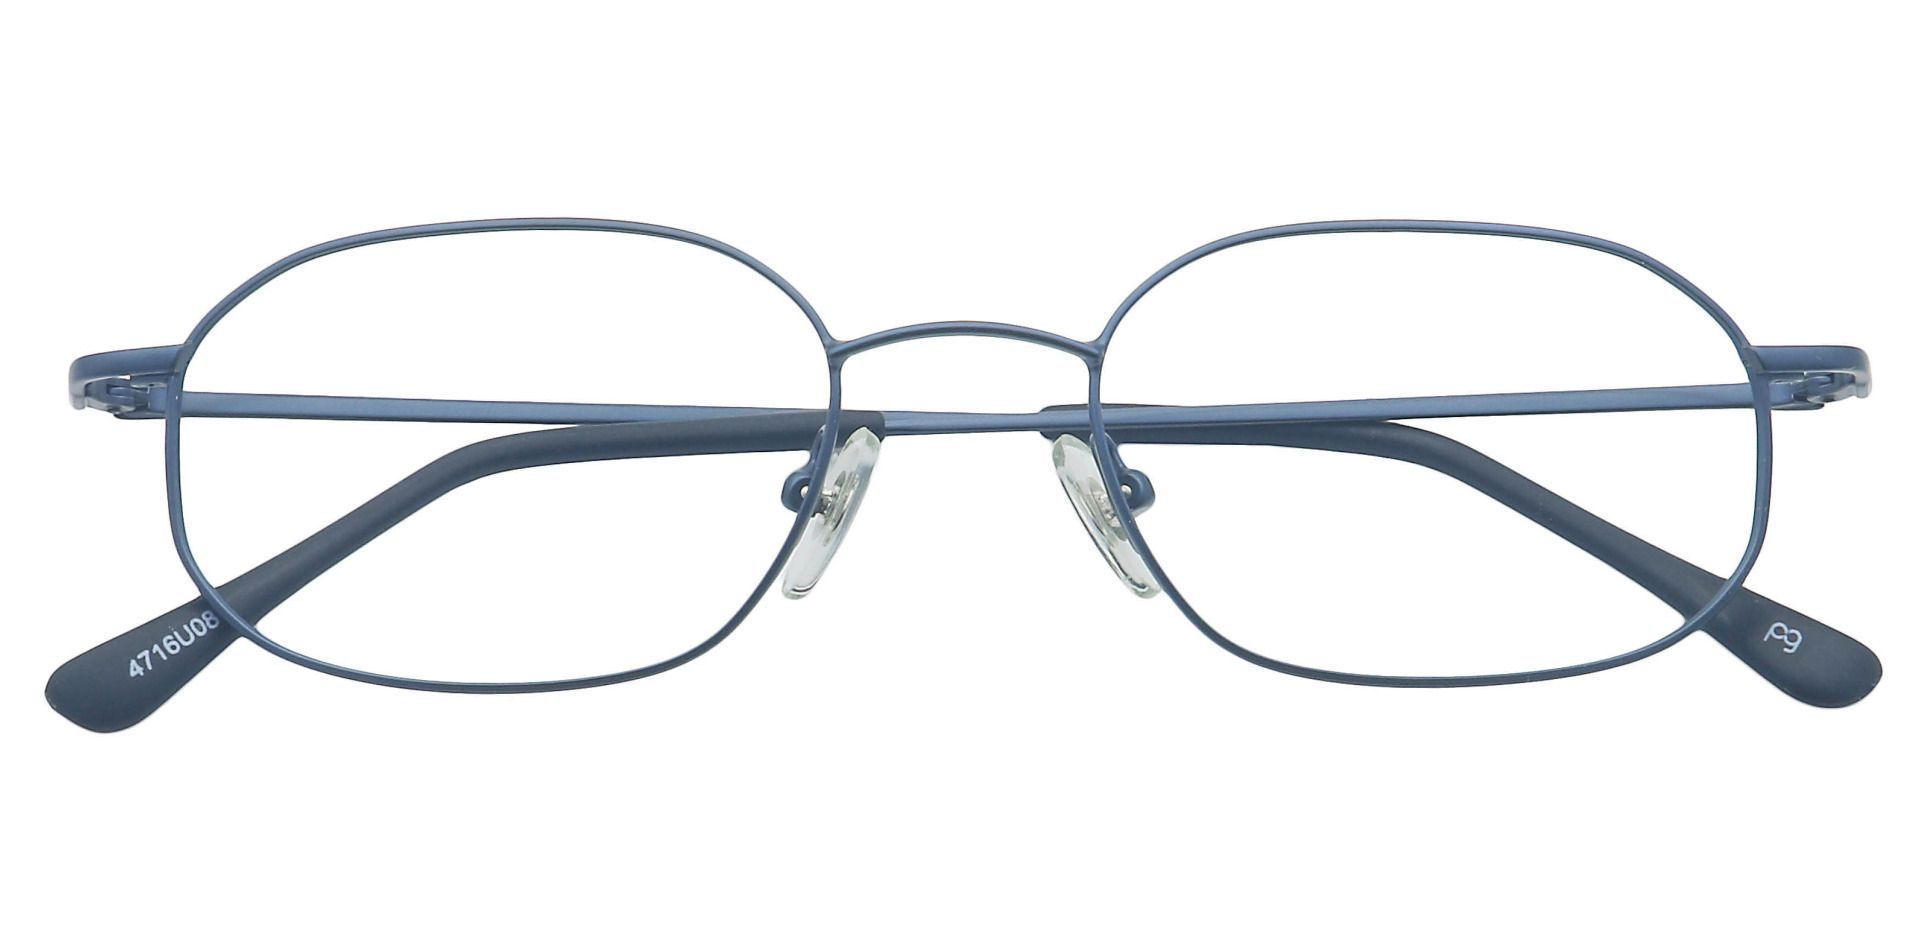 Parker Oval Progressive Glasses - Blue